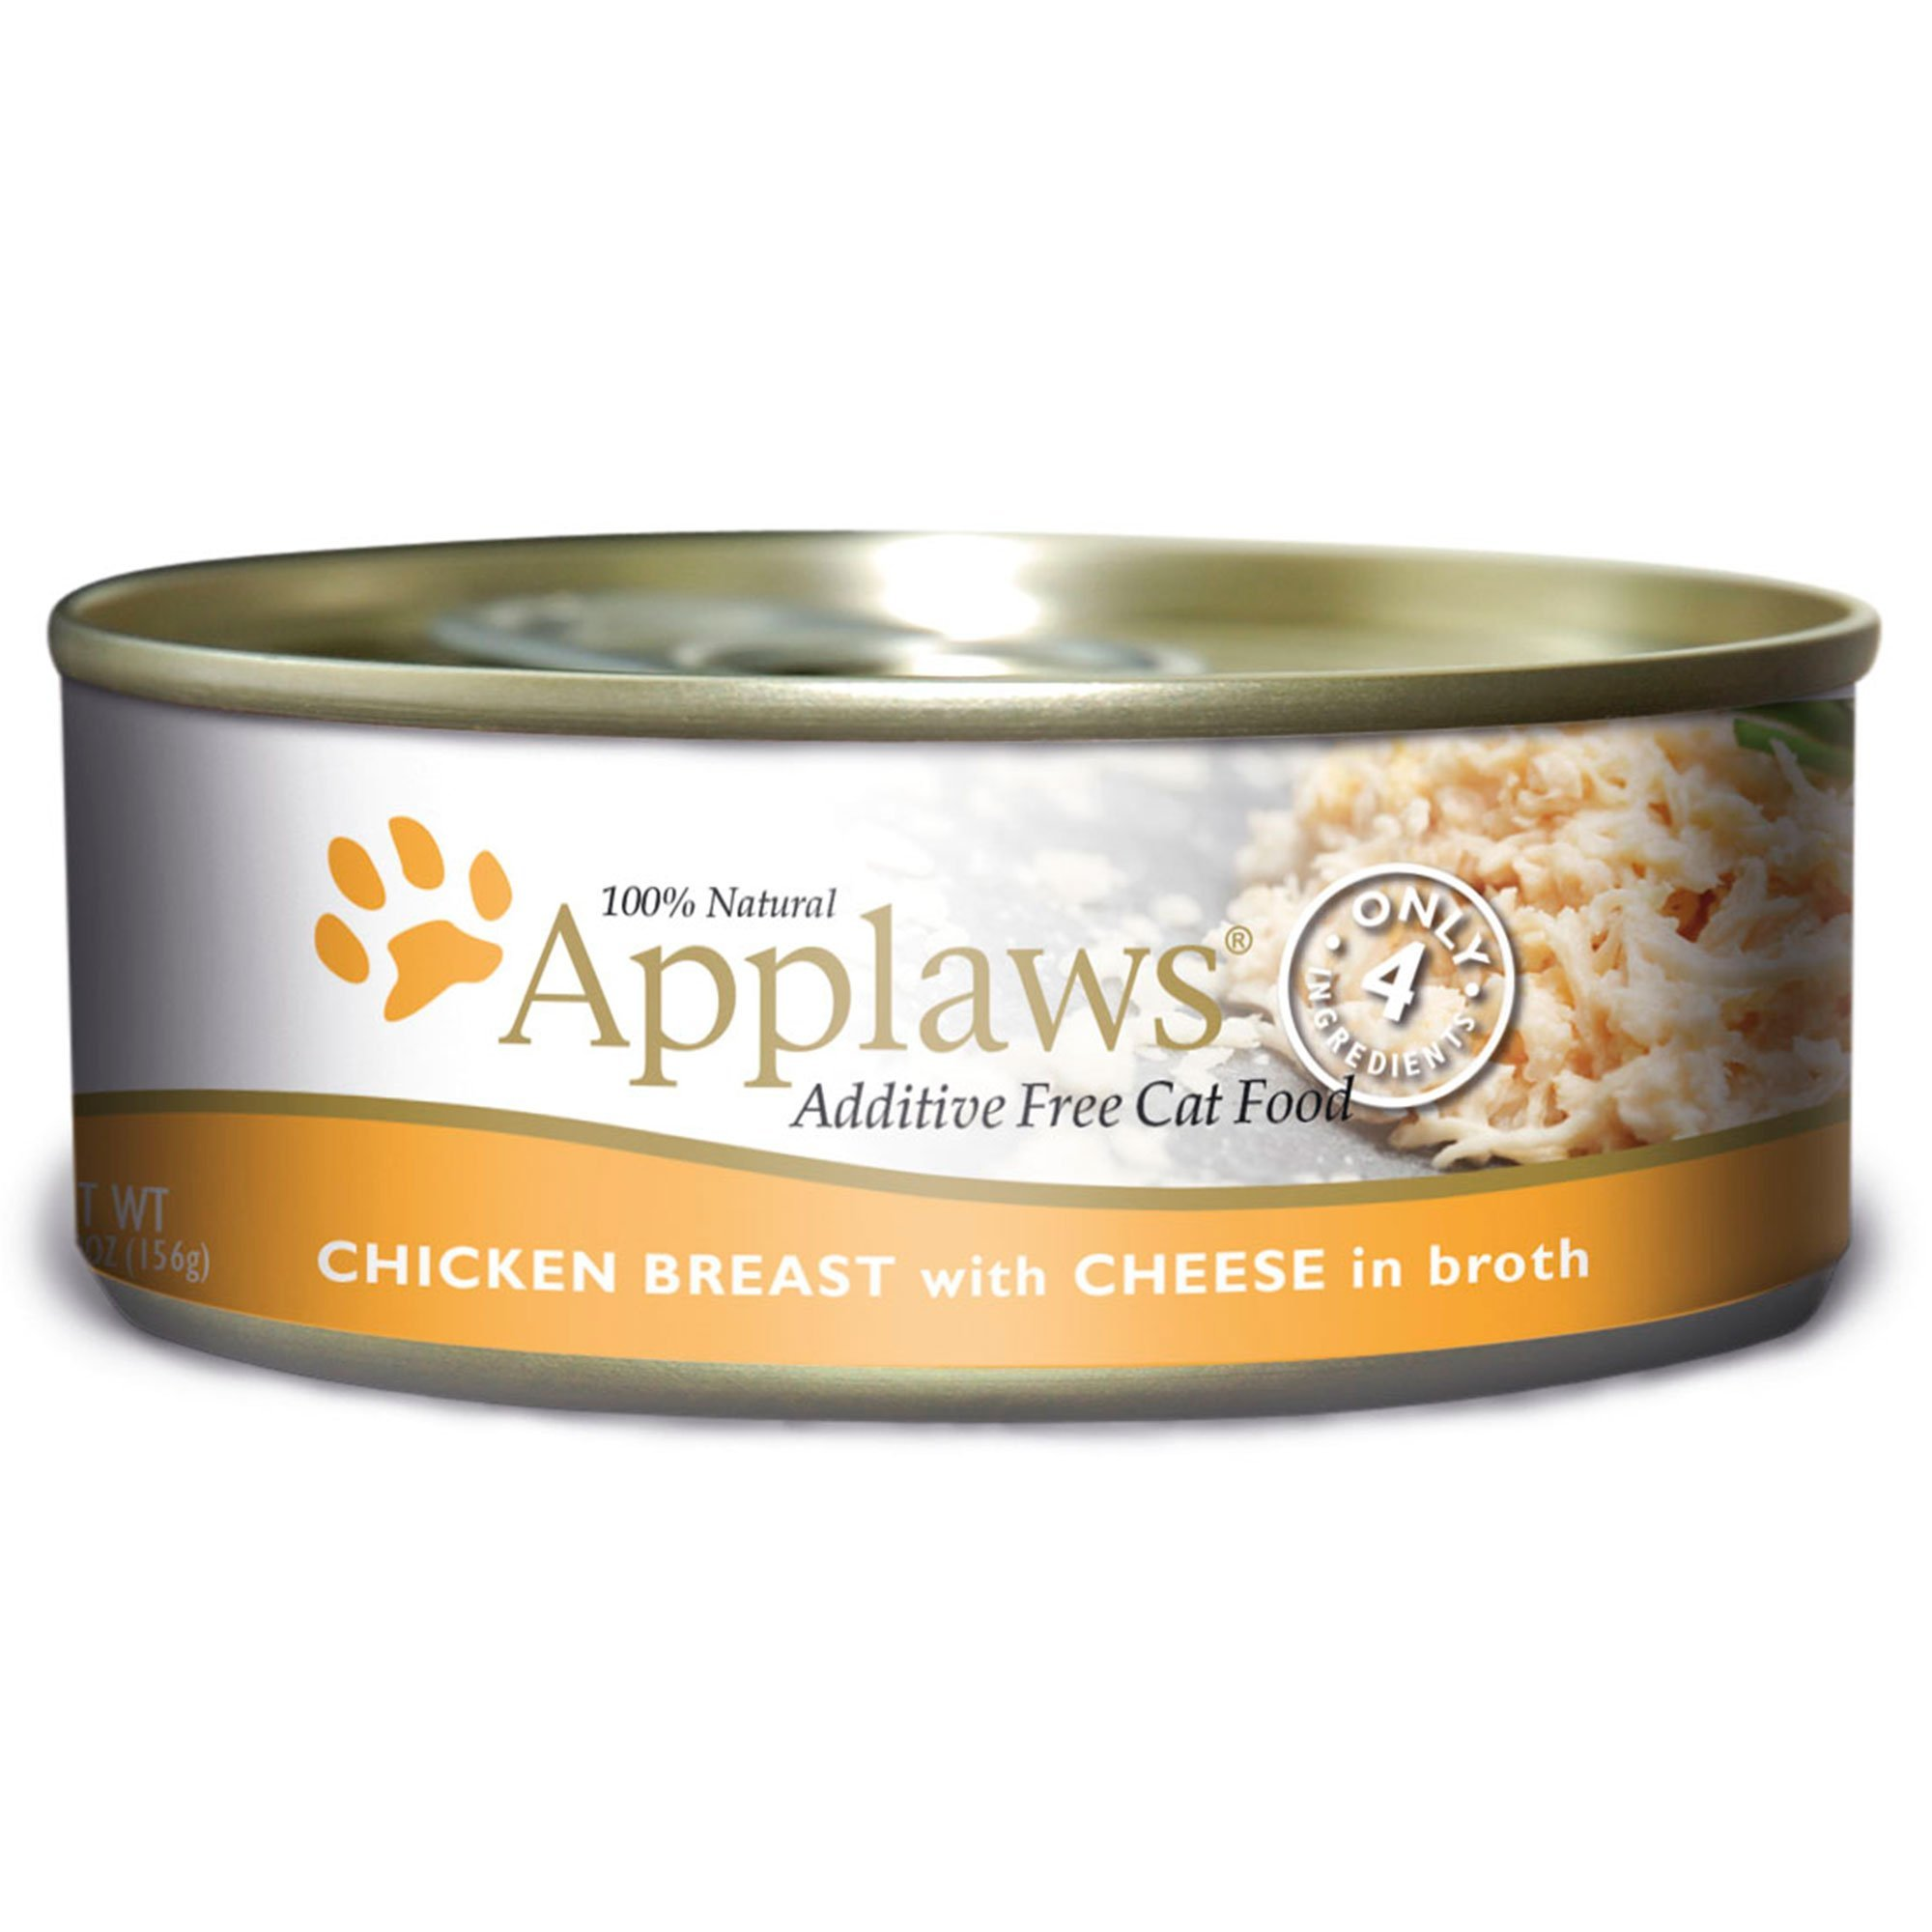 Applaws Chicken Breast And Cheese, 24 - 5.5-Ounce Can by Applaws